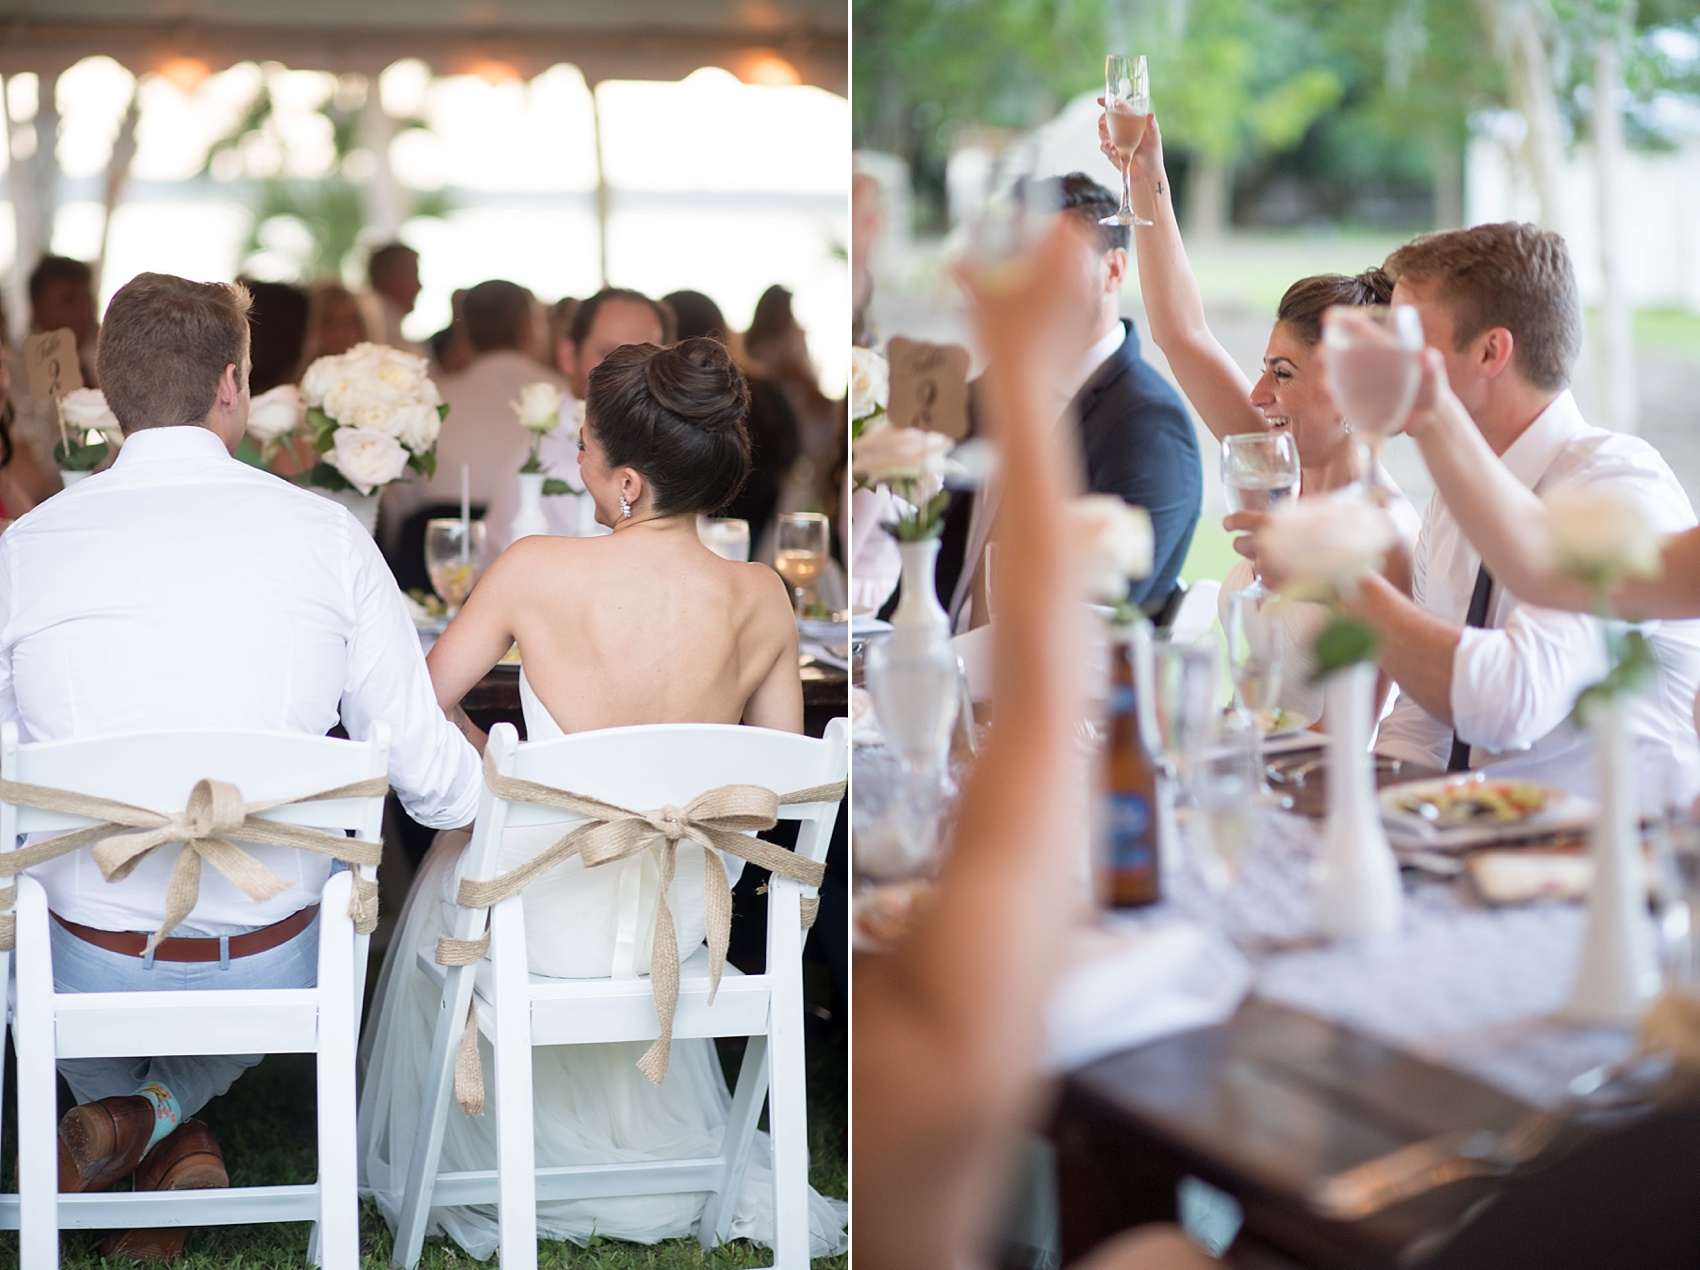 Toasts for the bride and groom at a wedding at Haig Point in South Carolina, off the coast of Hilton Head. Photos by Mikkel Paige Photography.